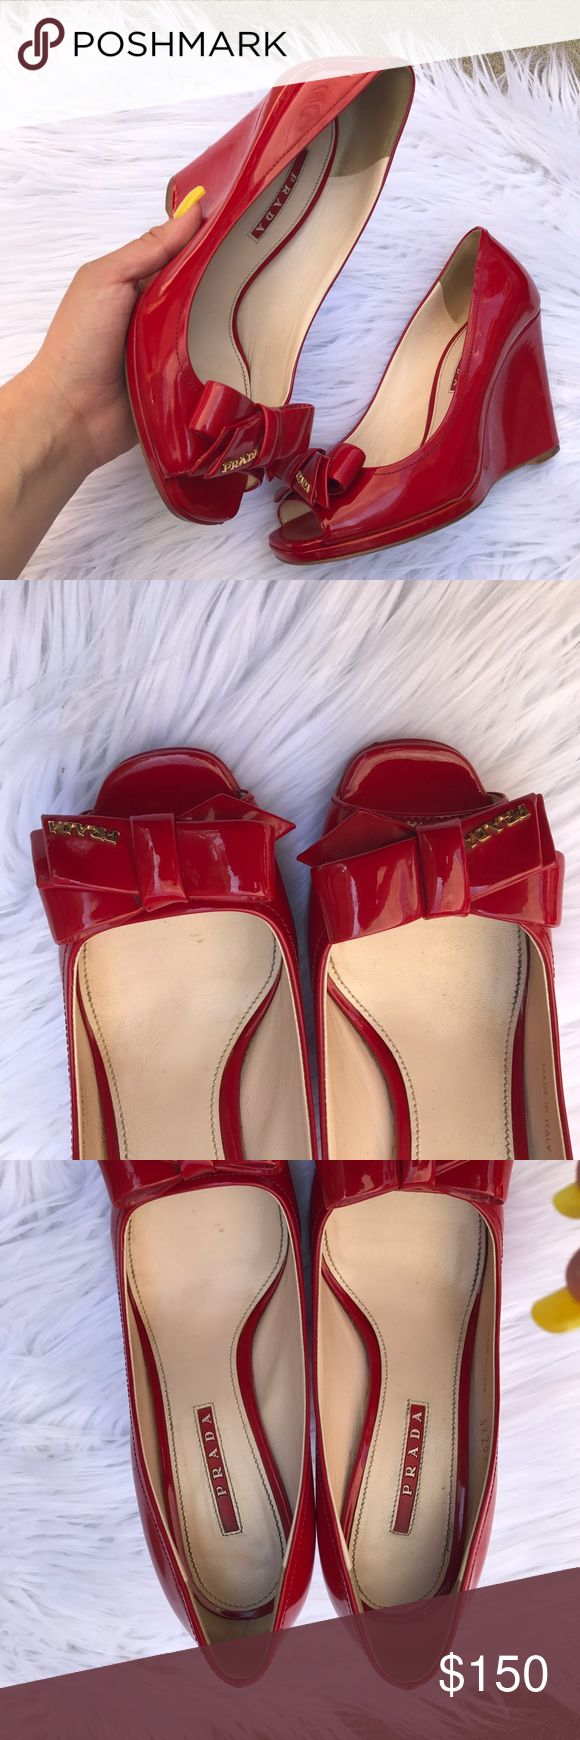 PRADA PATENT LEATHER RED WEDGES HEELS SHOES SZ 7 Beautiful patent leather Prada wedges 100% authentic Prada Shoes